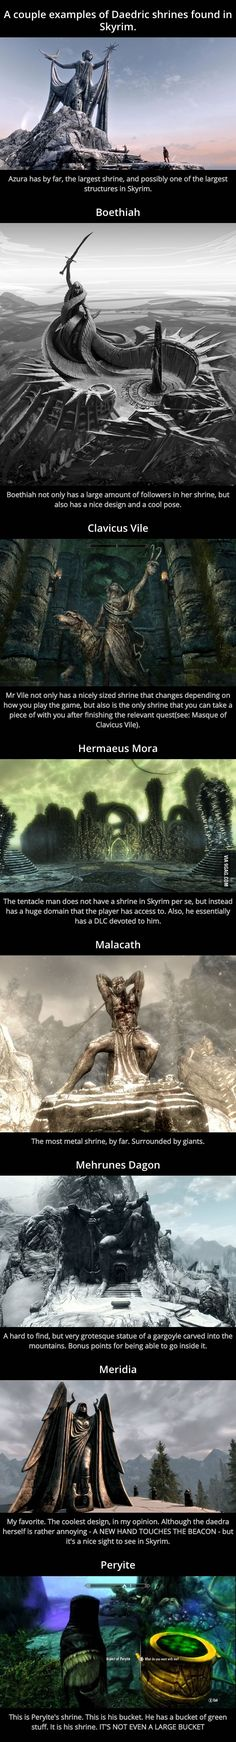 Why Peryite is the Worst Daedric Prince in Skyrim: Shrine Analysis